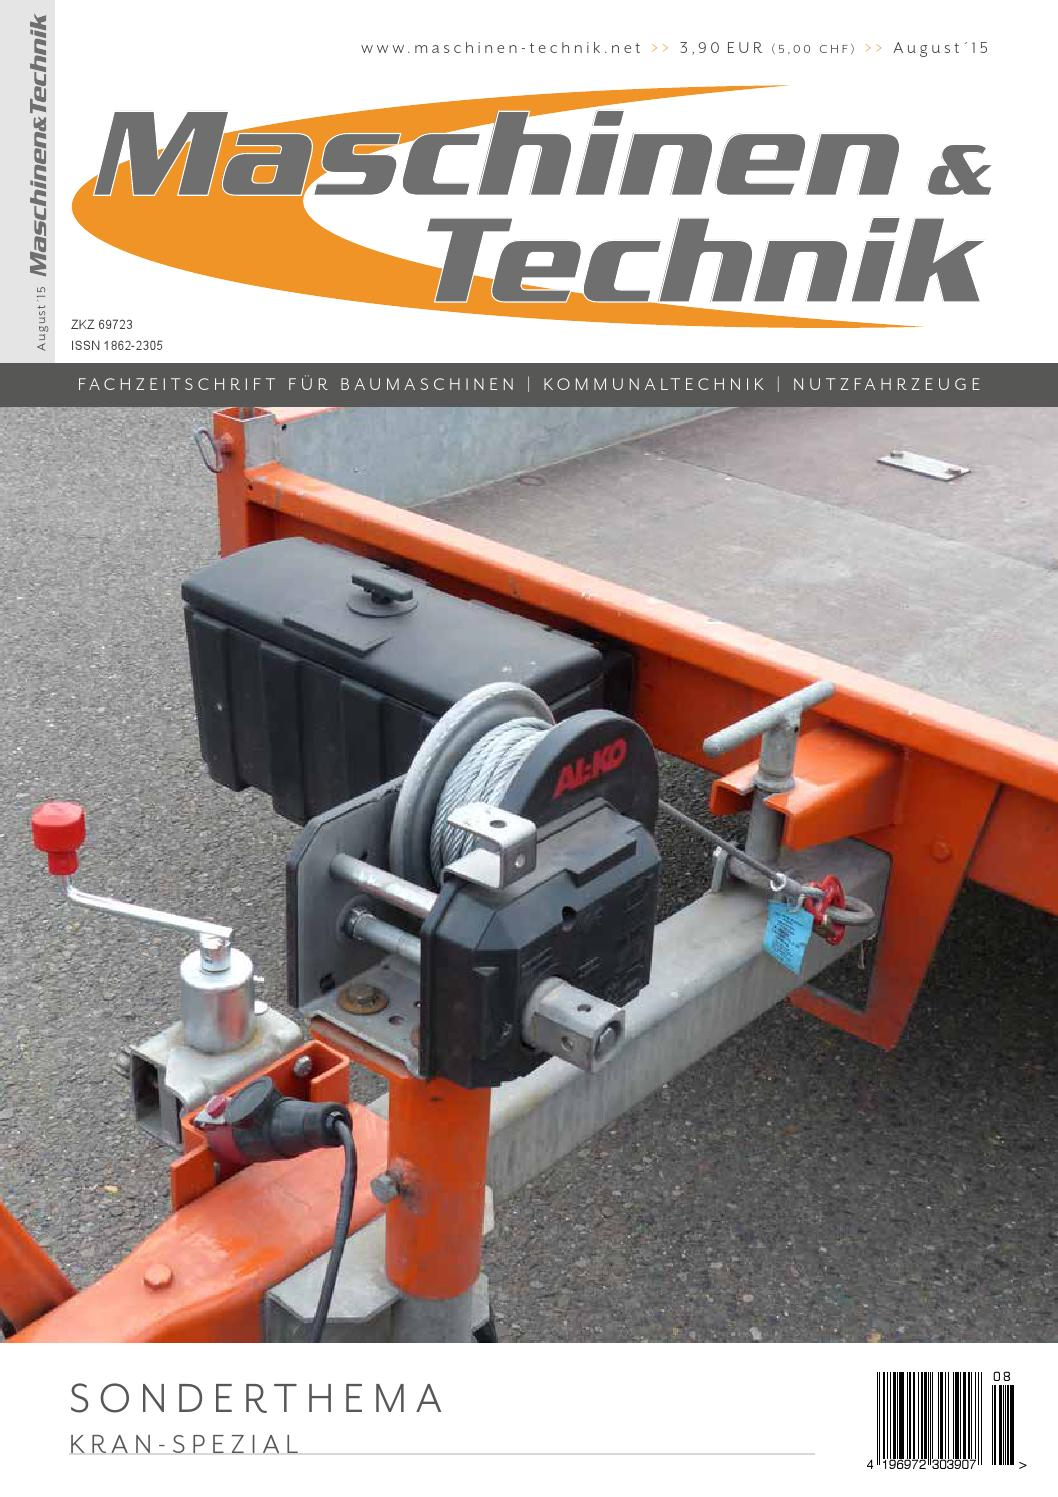 Maschinen & Technik | August 2015 by TB Verlag - issuu